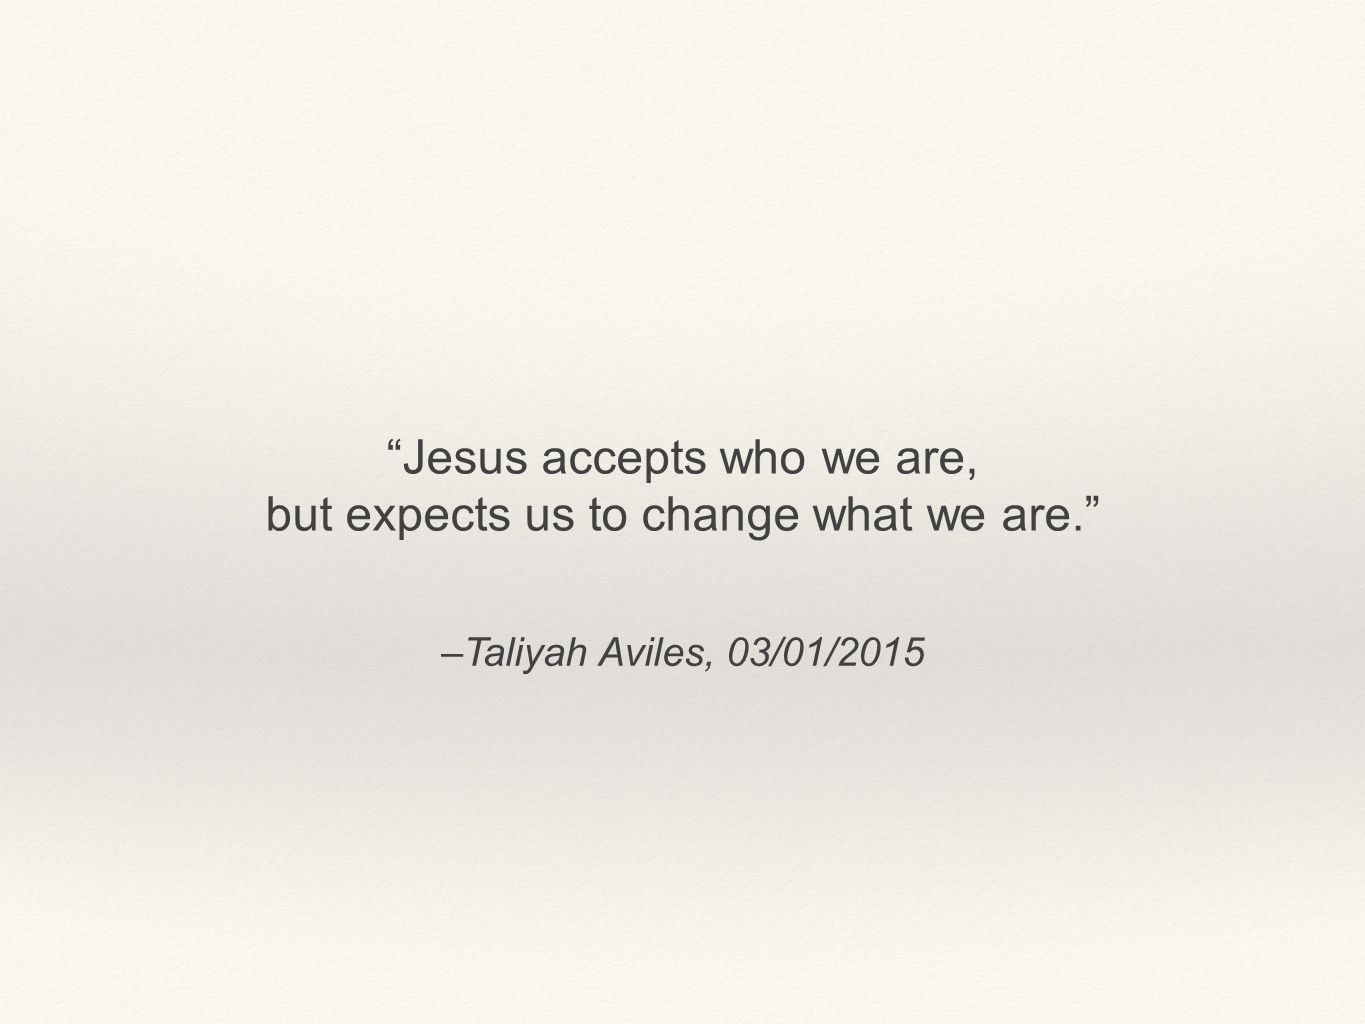 Jesus accepts who we are, but expects us to change what we are.